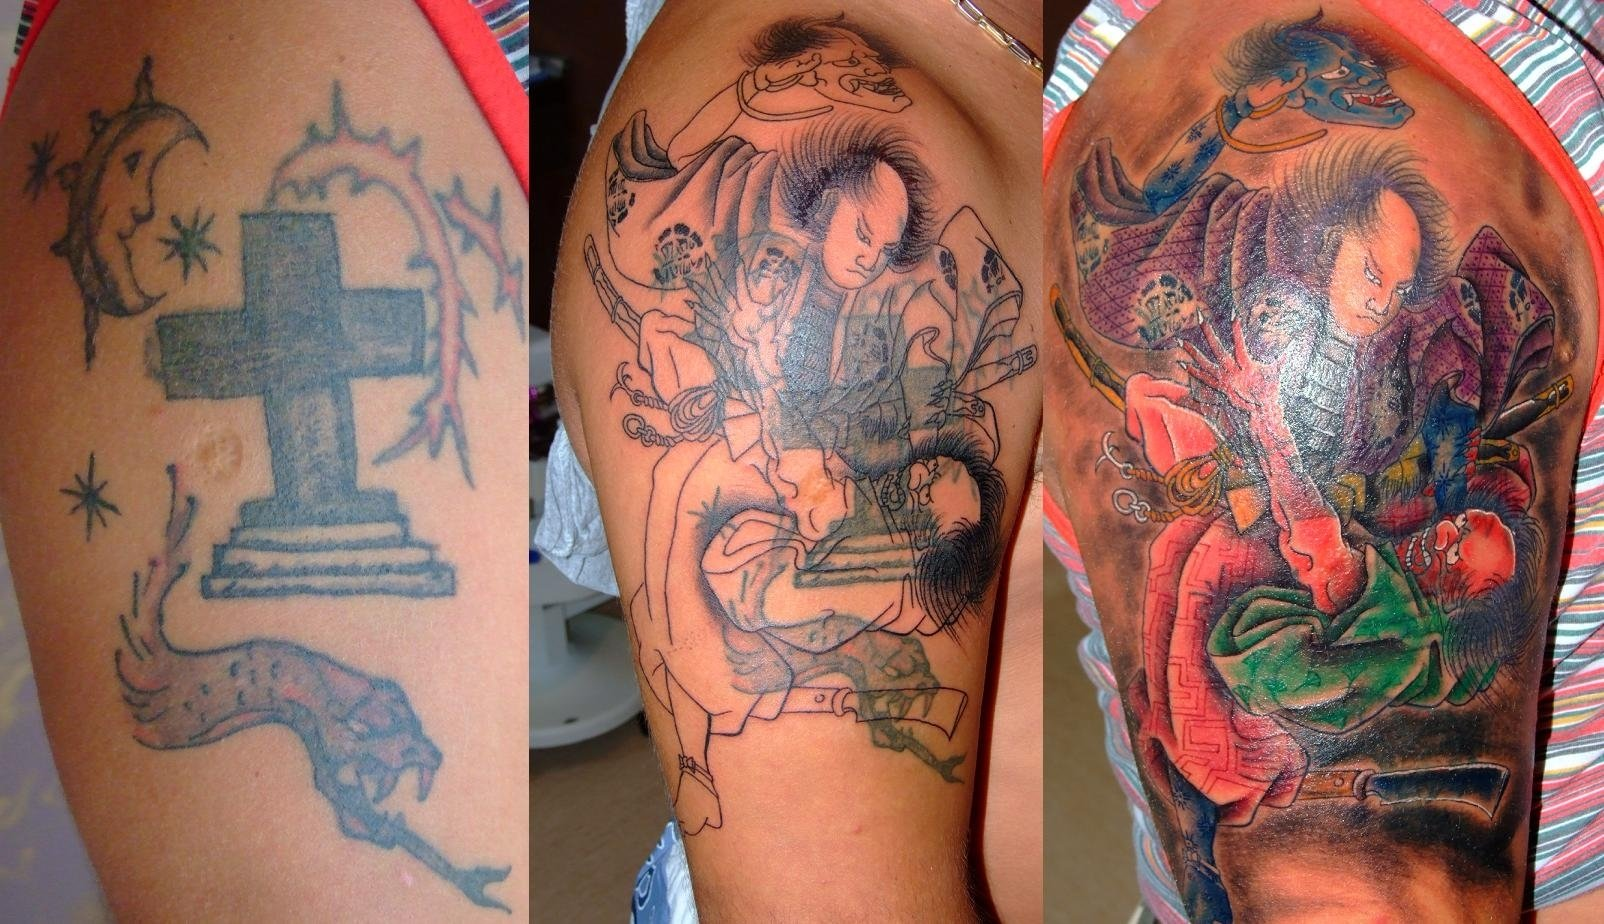 10 Attractive Arm Tattoo Cover Up Ideas cover up tattoos tattoo ideas 1 2020